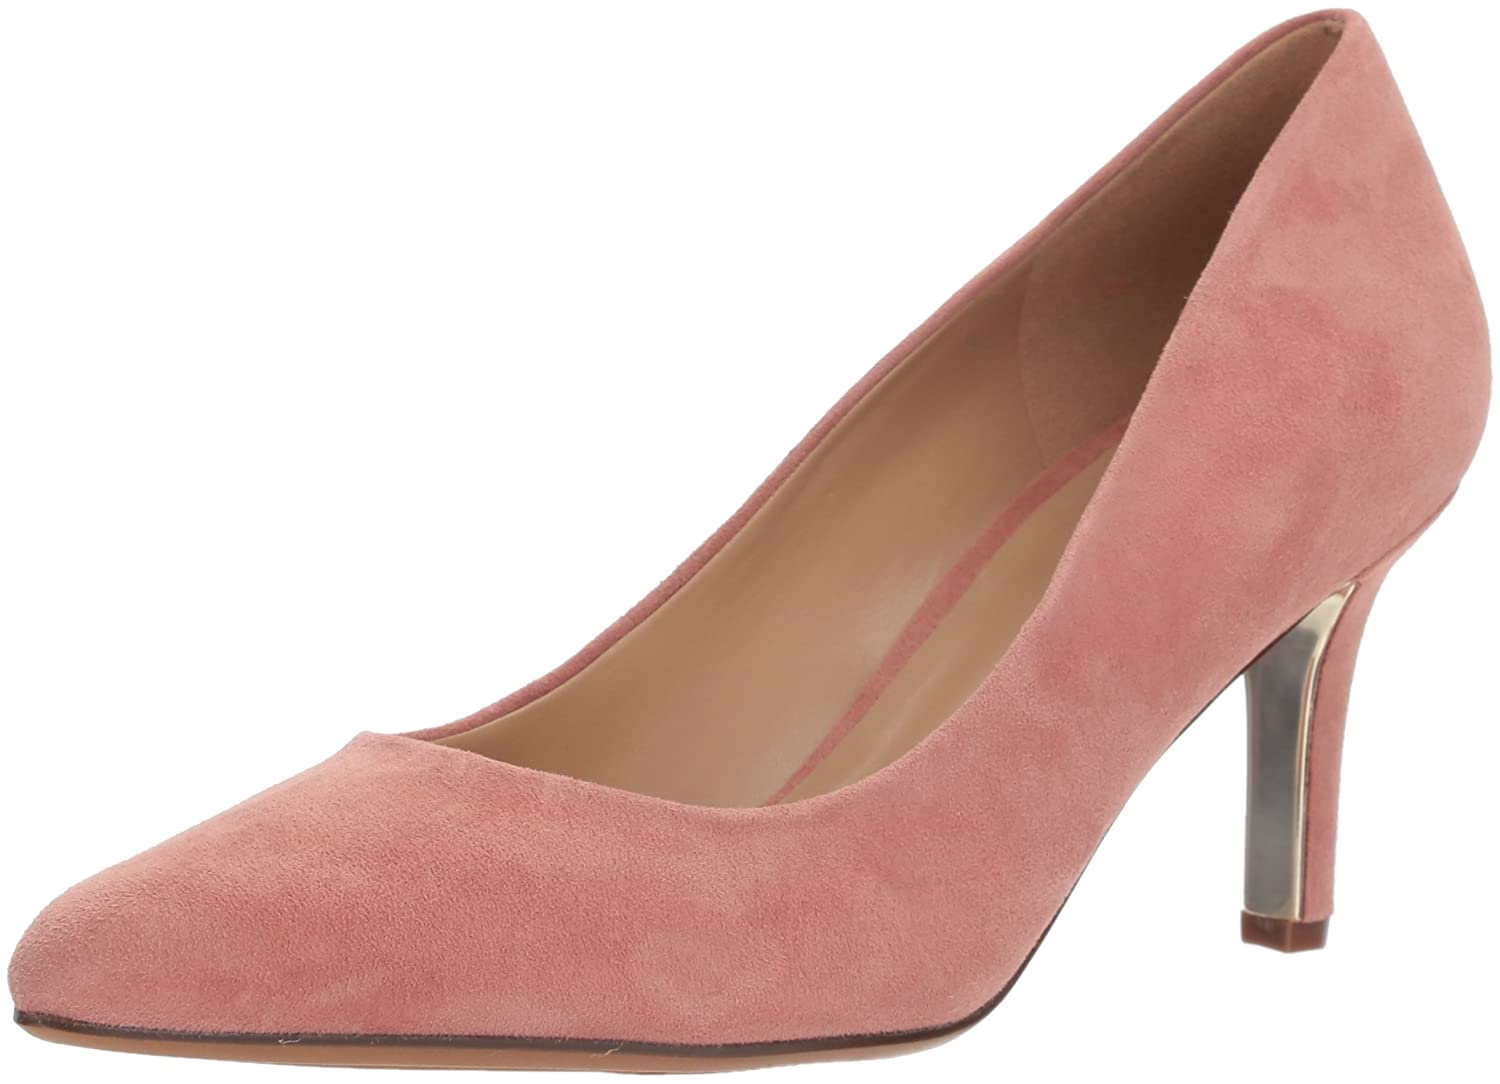 Naturalizer Womens Natalie Pointed Toe Leather Classic Pumps B073WZL6ZC 9 B(M) US|ピンクスエード ピンクスエード 9 B(M) US